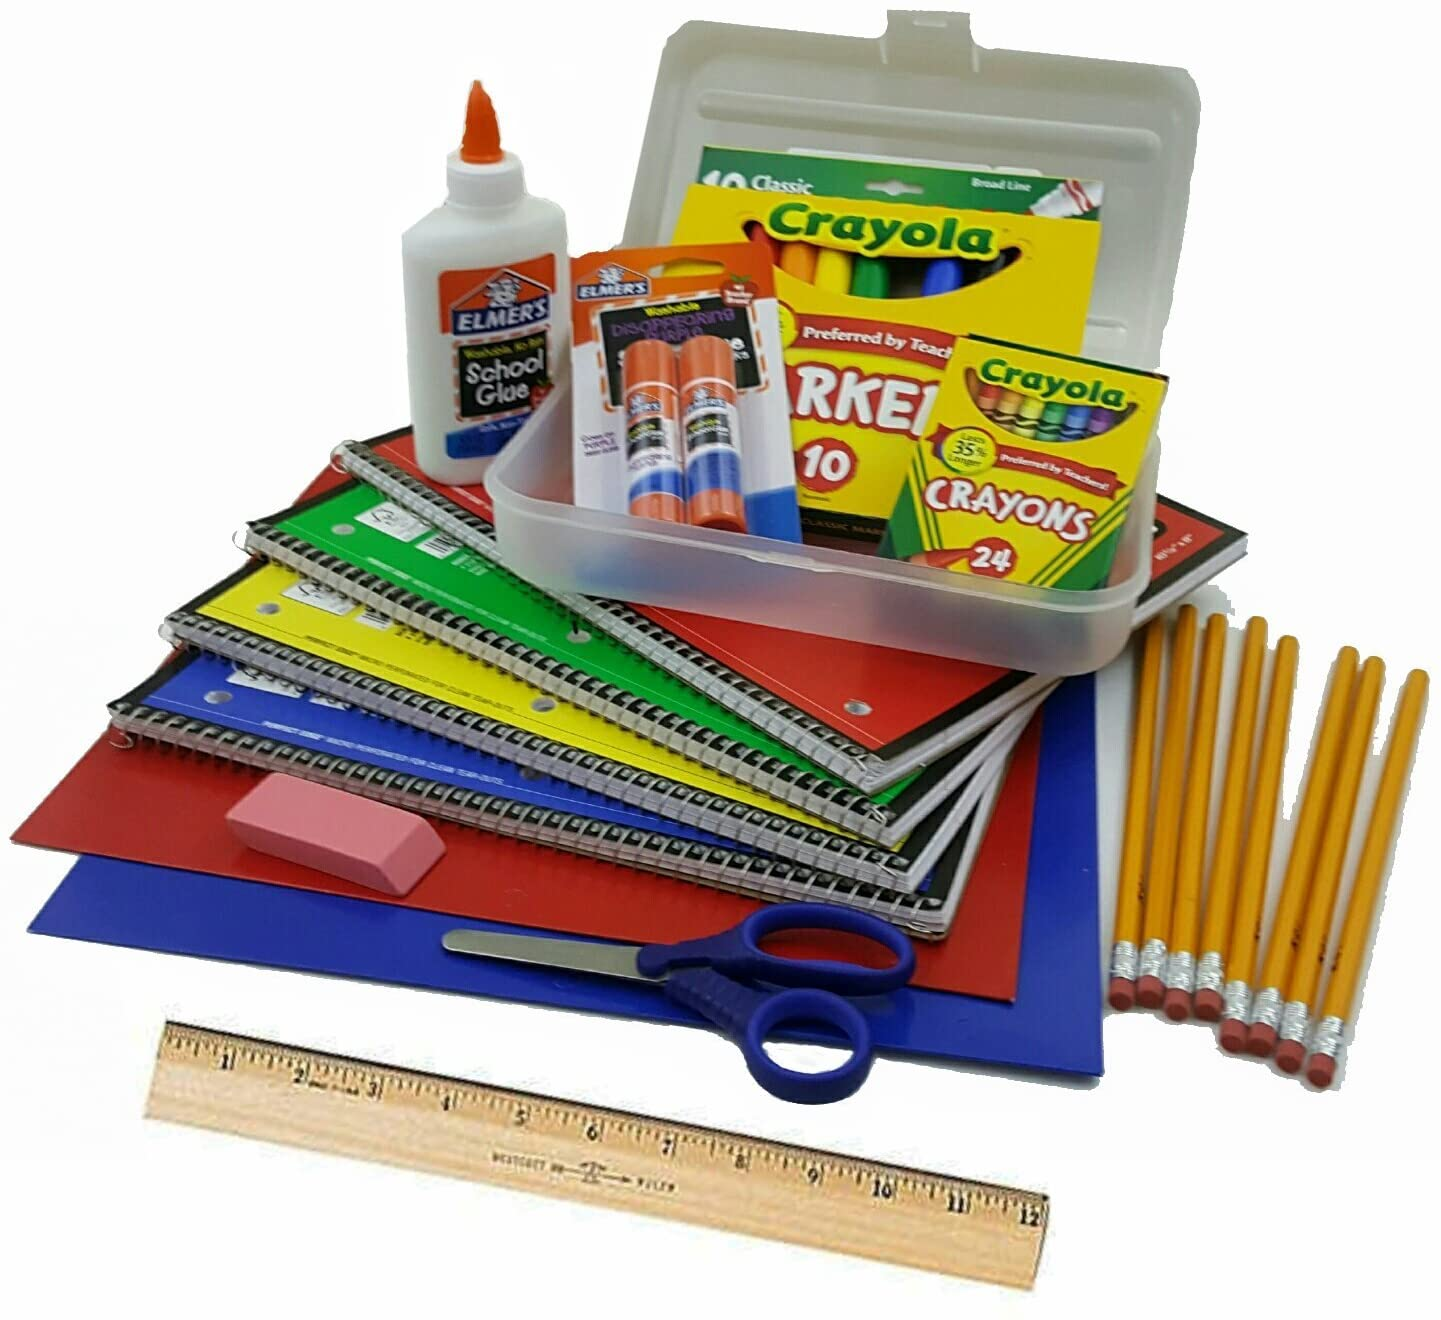 Free school supplies event scheduled at Breaks Community Center, drive-through only